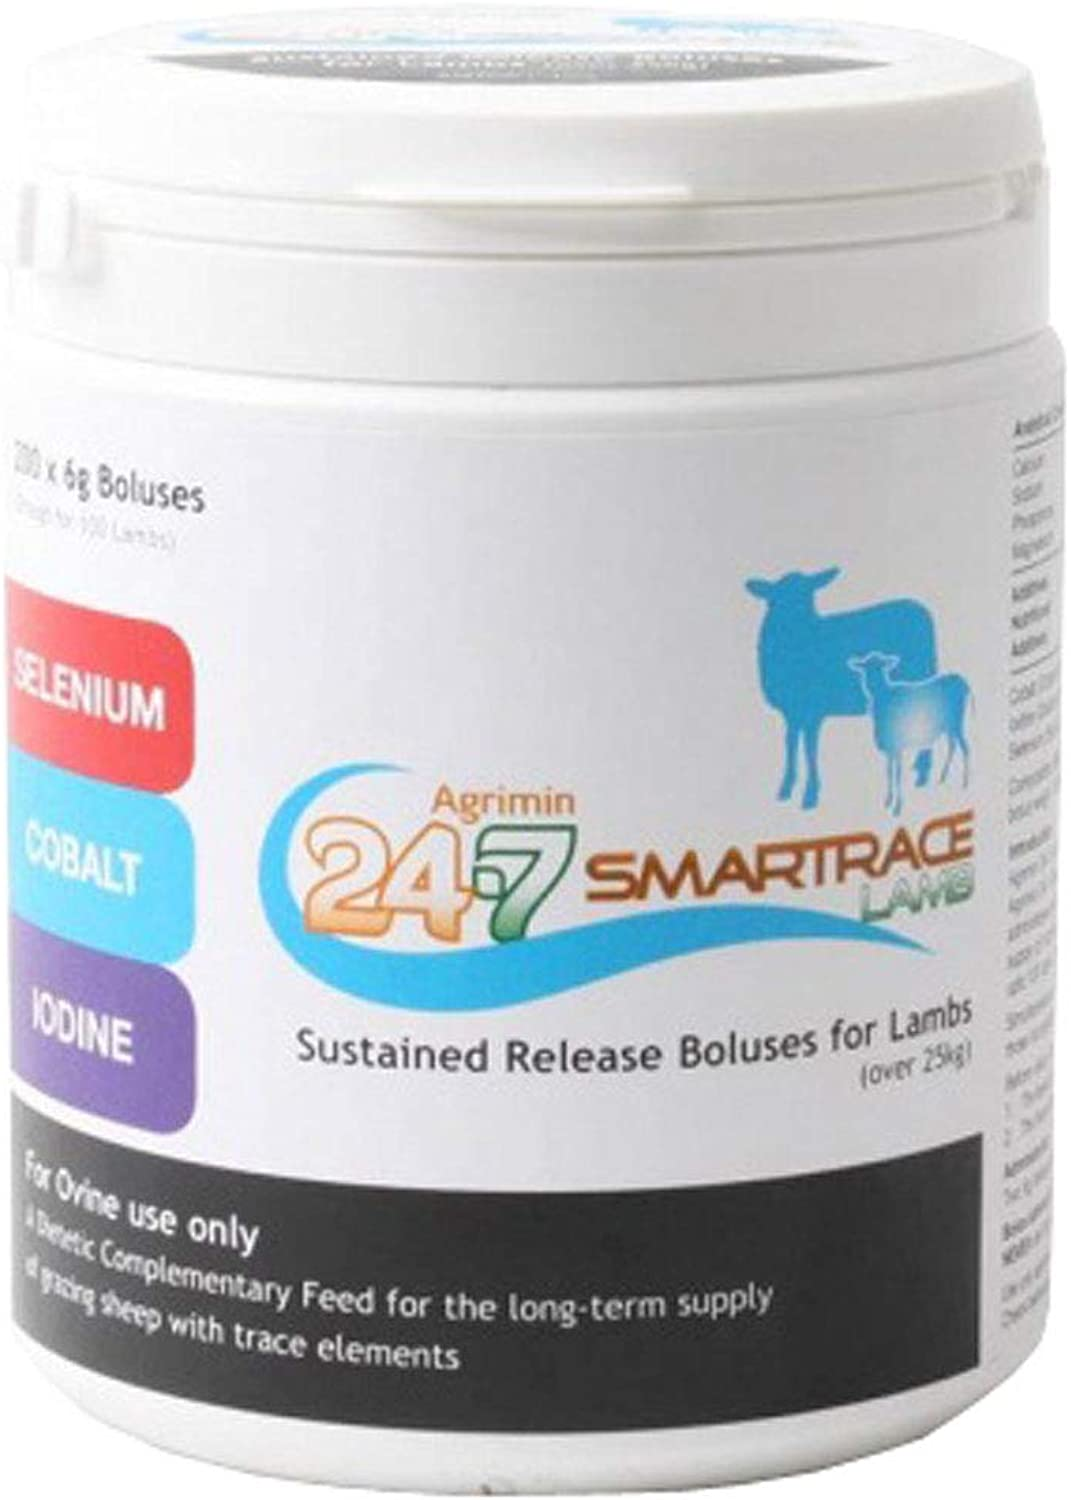 Agrimin 247 Copper Capsules For Lambs